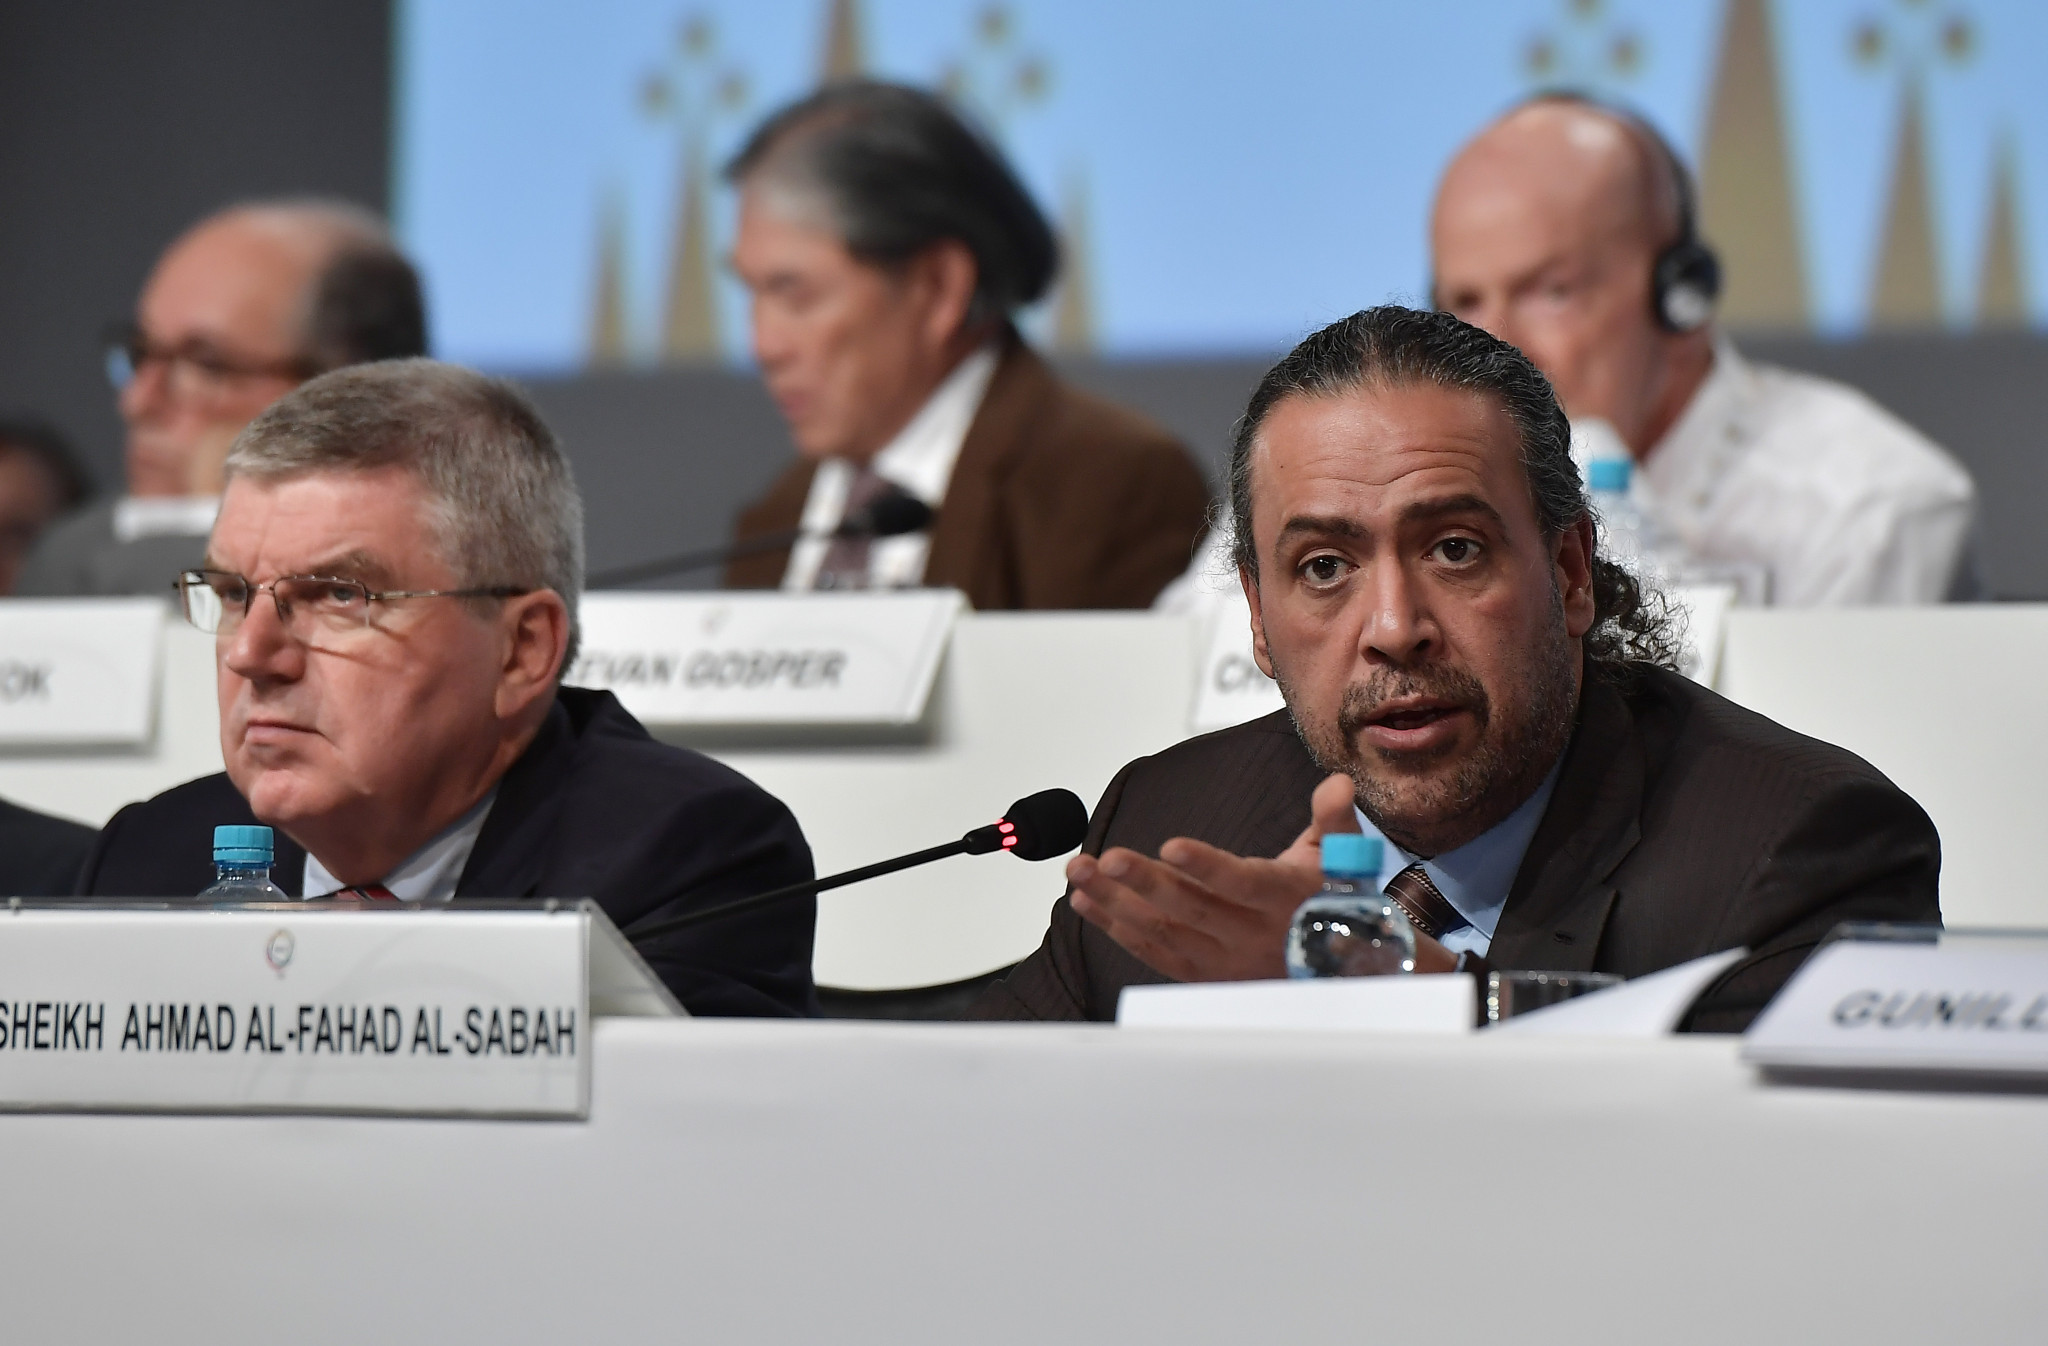 Exclusive: Sheikh Ahmad set to step aside as ANOC President before election after Bach plea